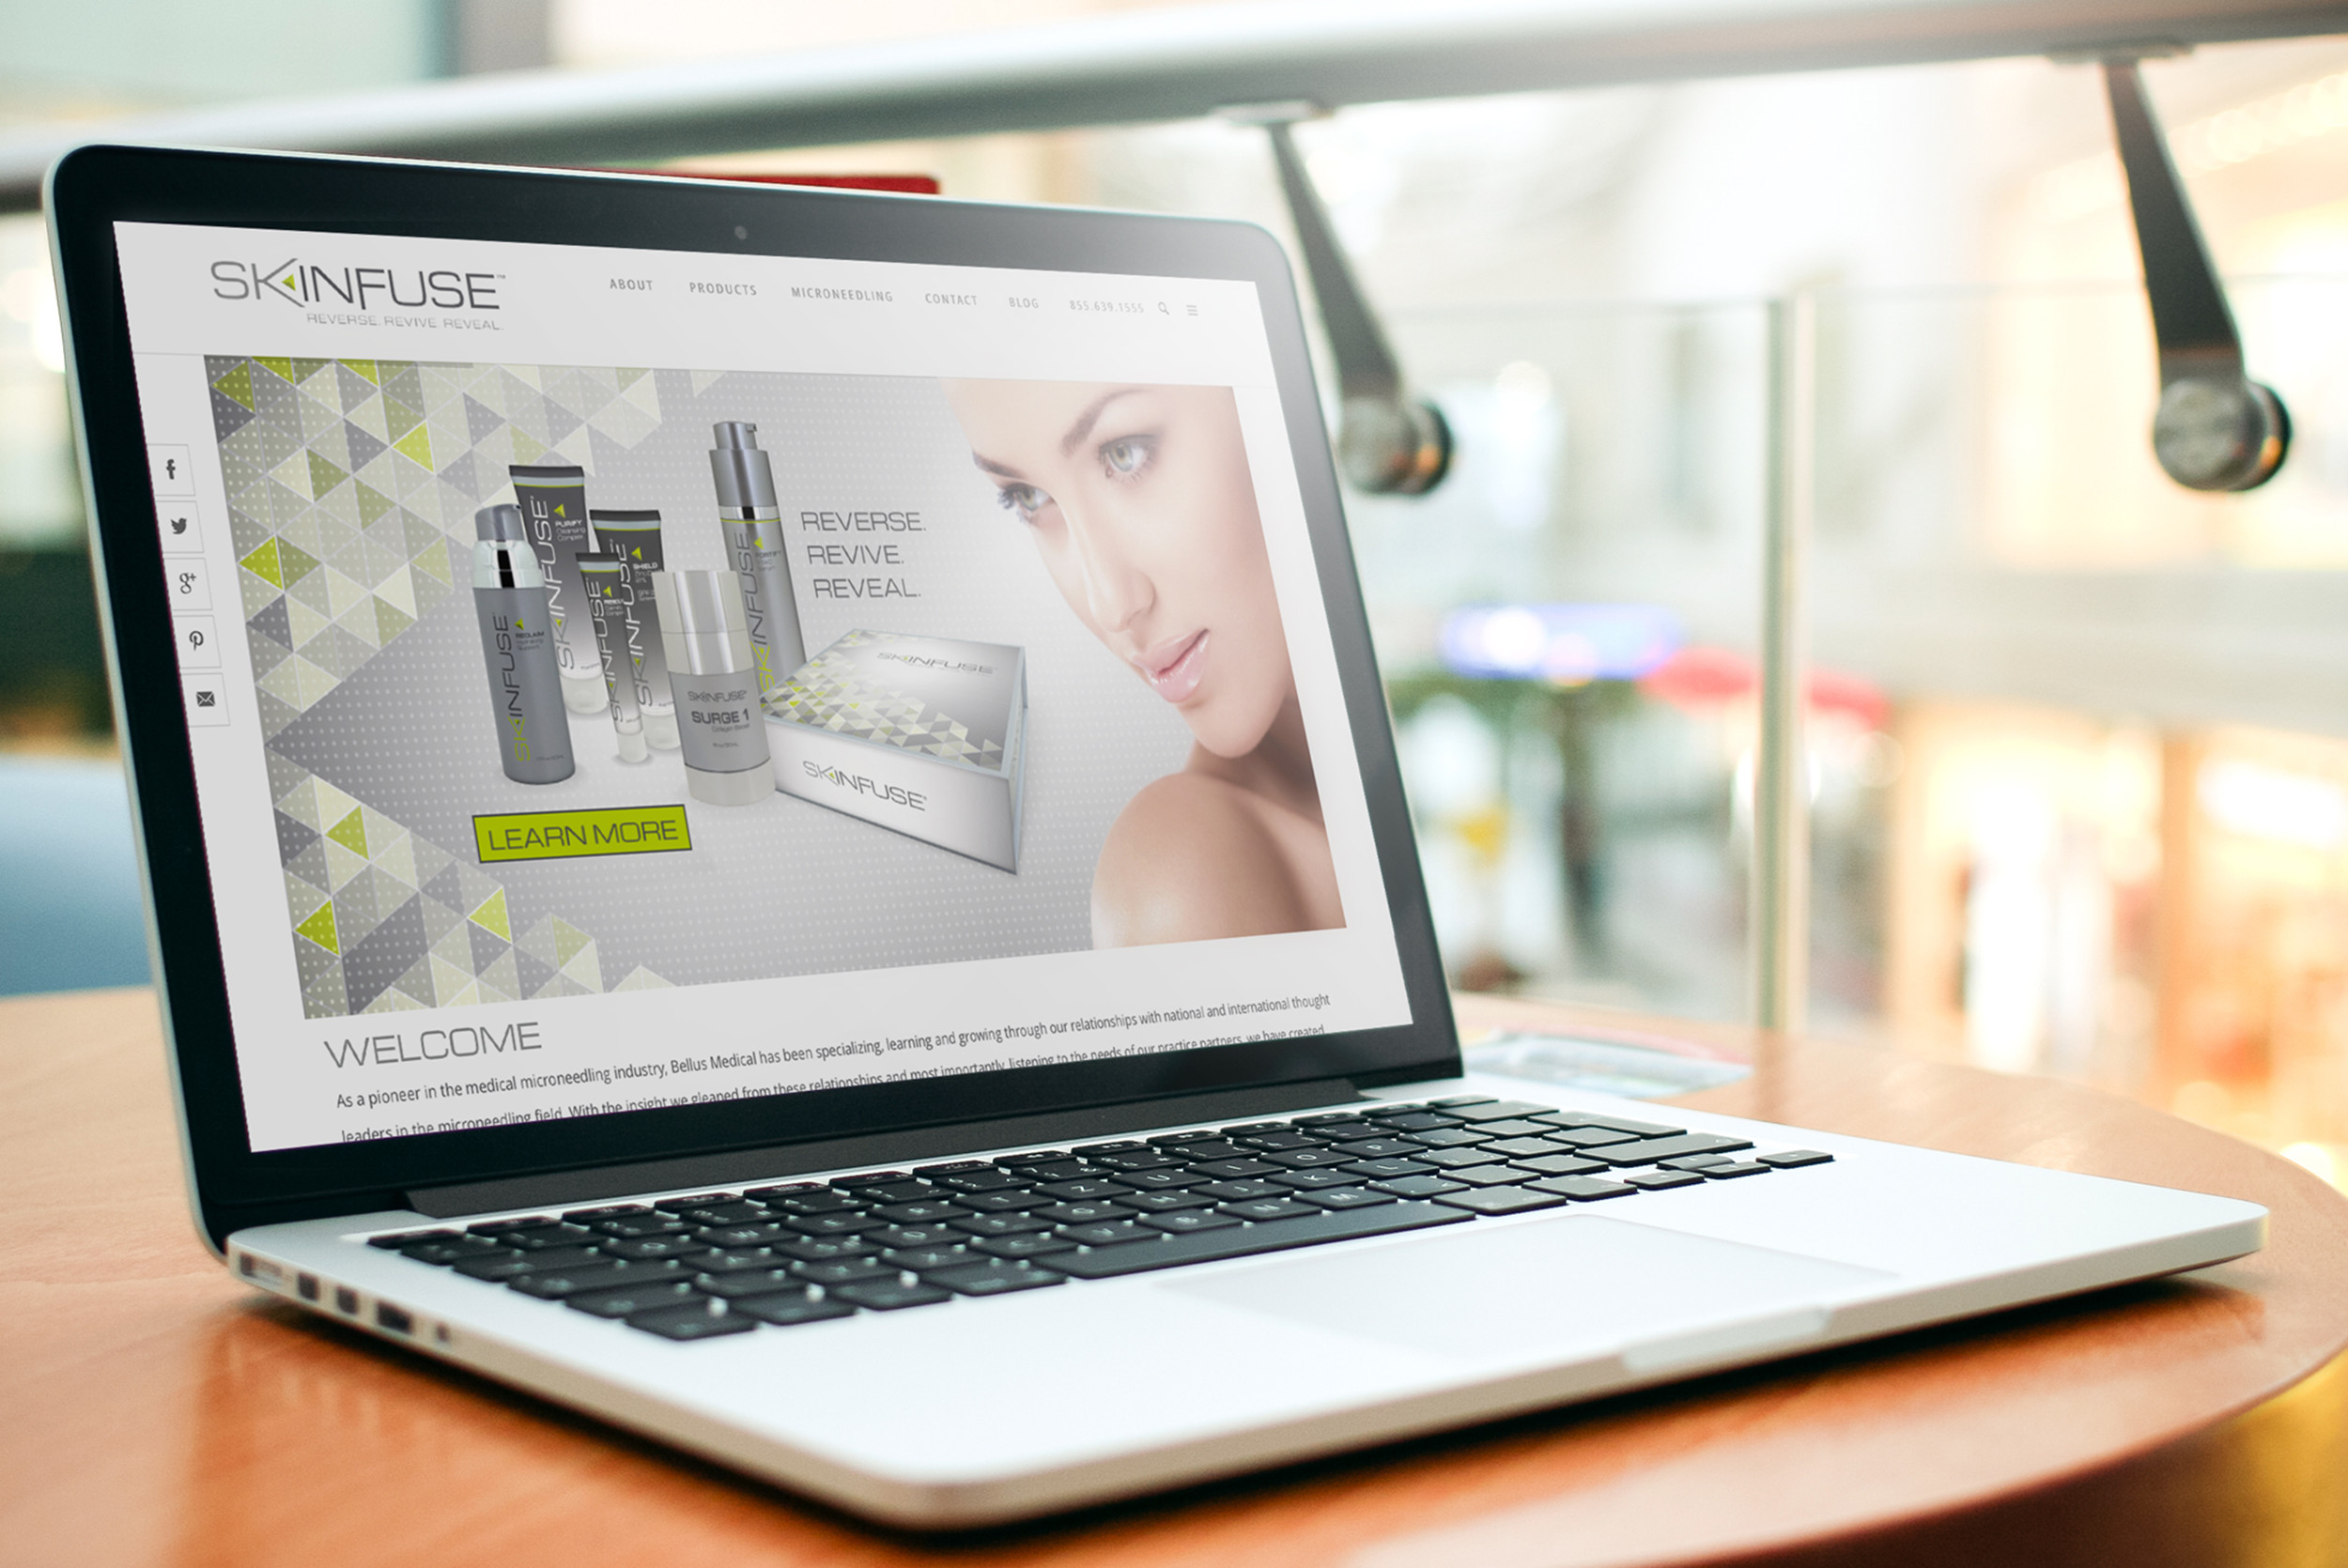 Skinfuse Skincare Website Design